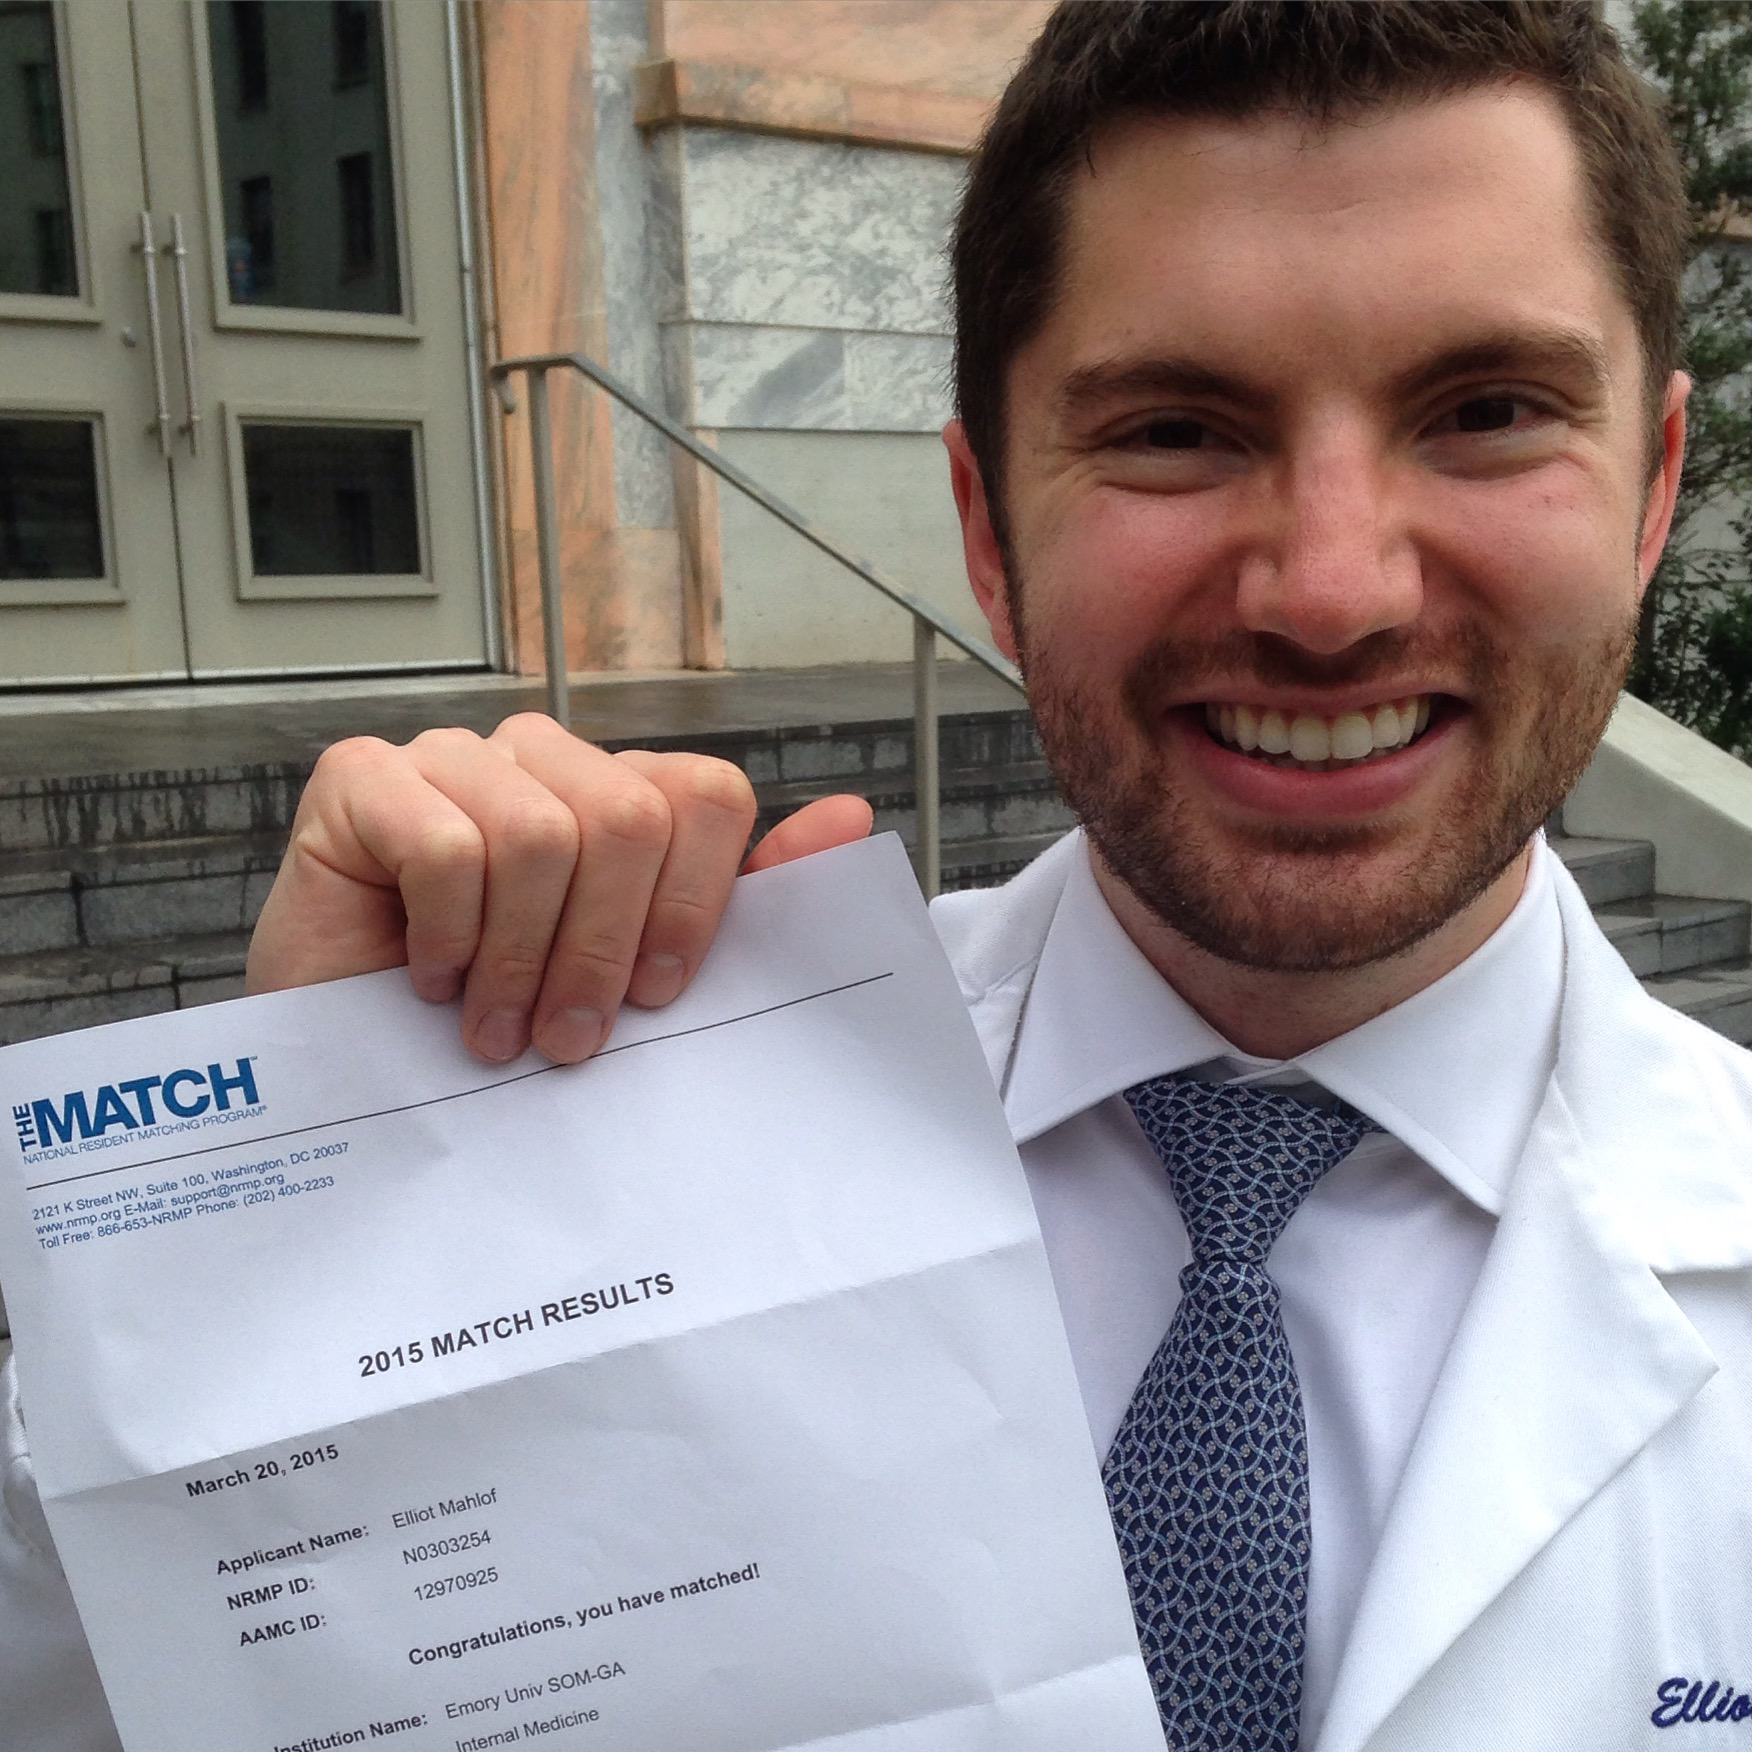 Emory medical student - Elliot Mahlof - on Match Day 2015 - matched Emory Internal Medicine residency